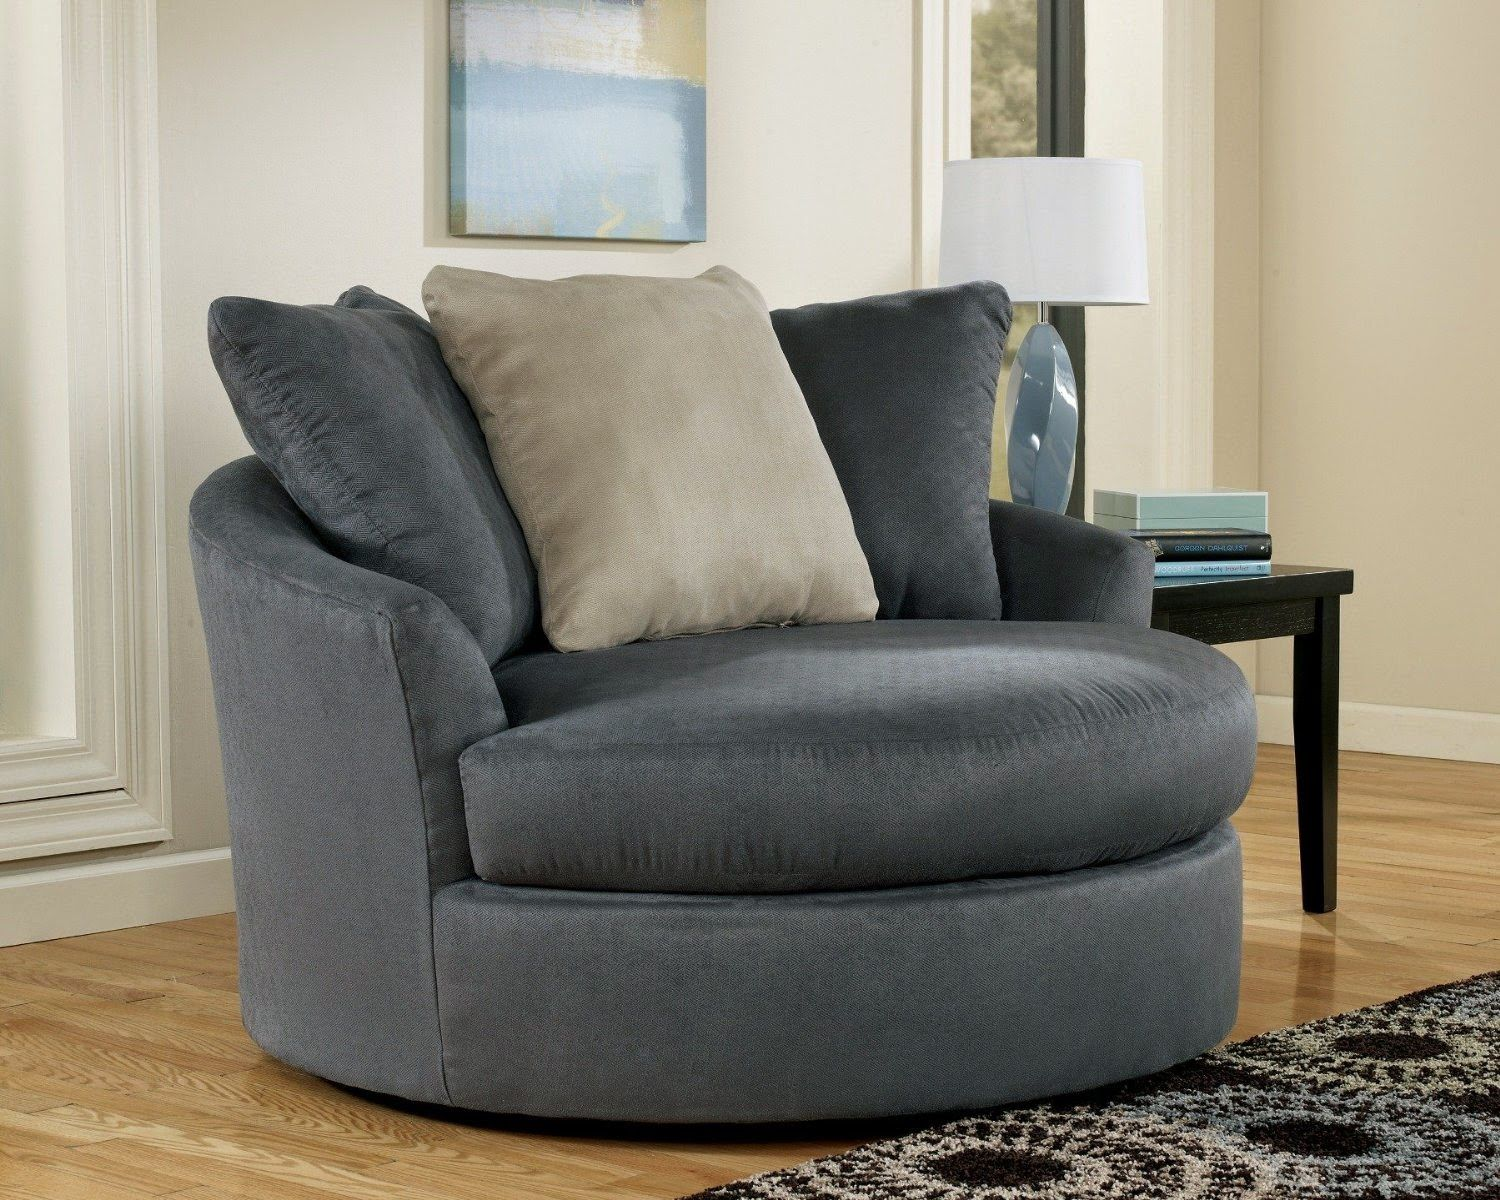 Magnificent Cuddle Couch In 2020 Comfortable Living Room Chairs Round Sofa Chair Swivel Chair Living Room